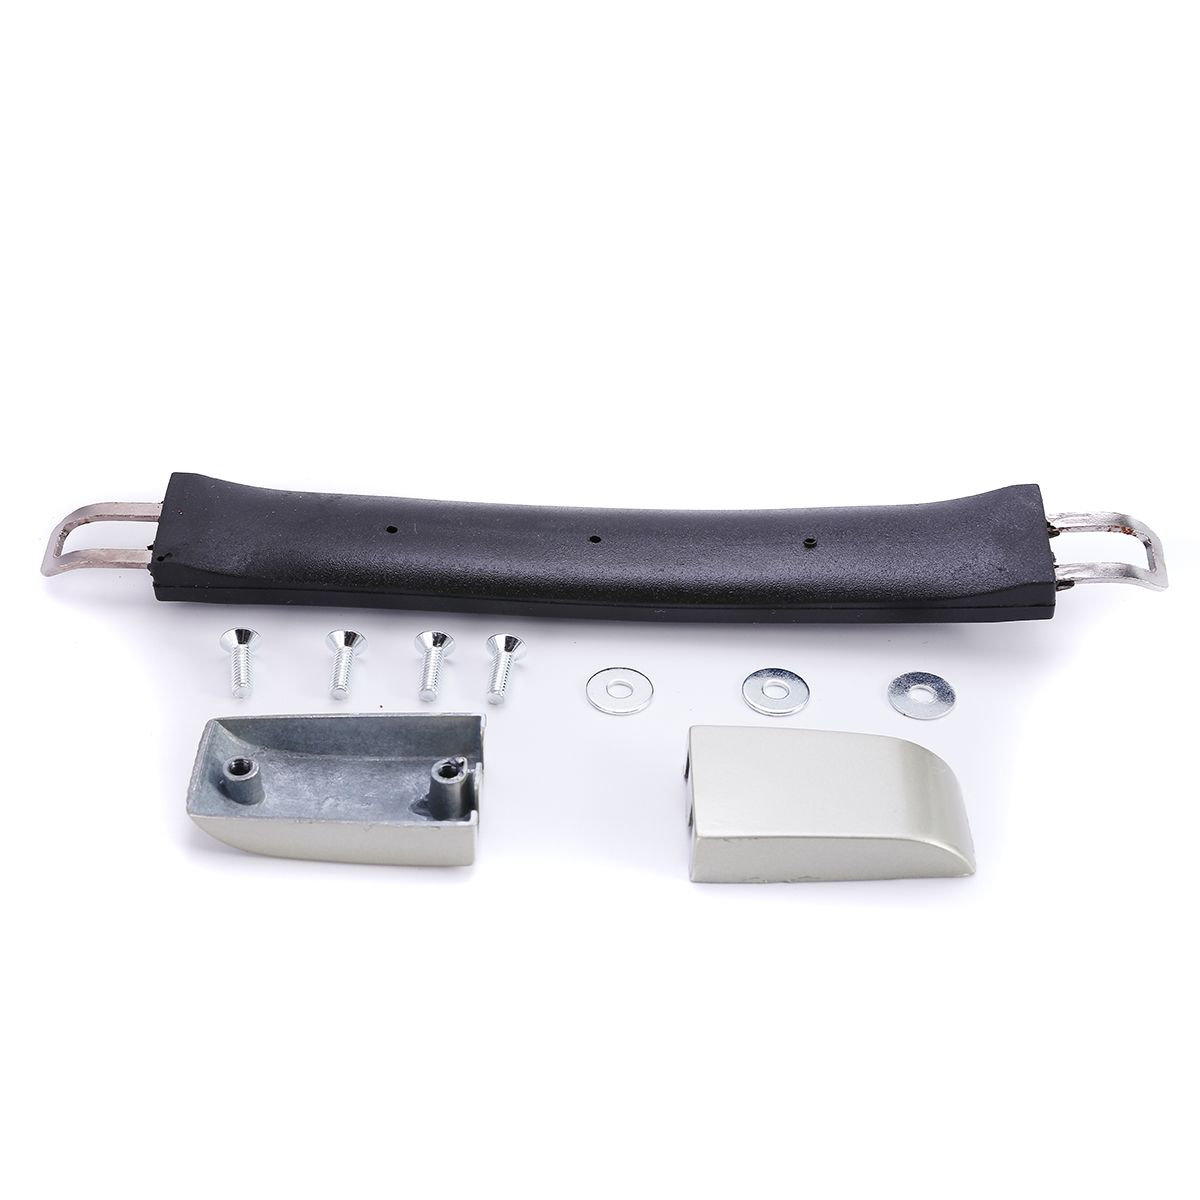 1 Set Luggage Case Handle Broken Replace Repair Tools Mayitr Suitcase Spare Strap Grip Black+Silver